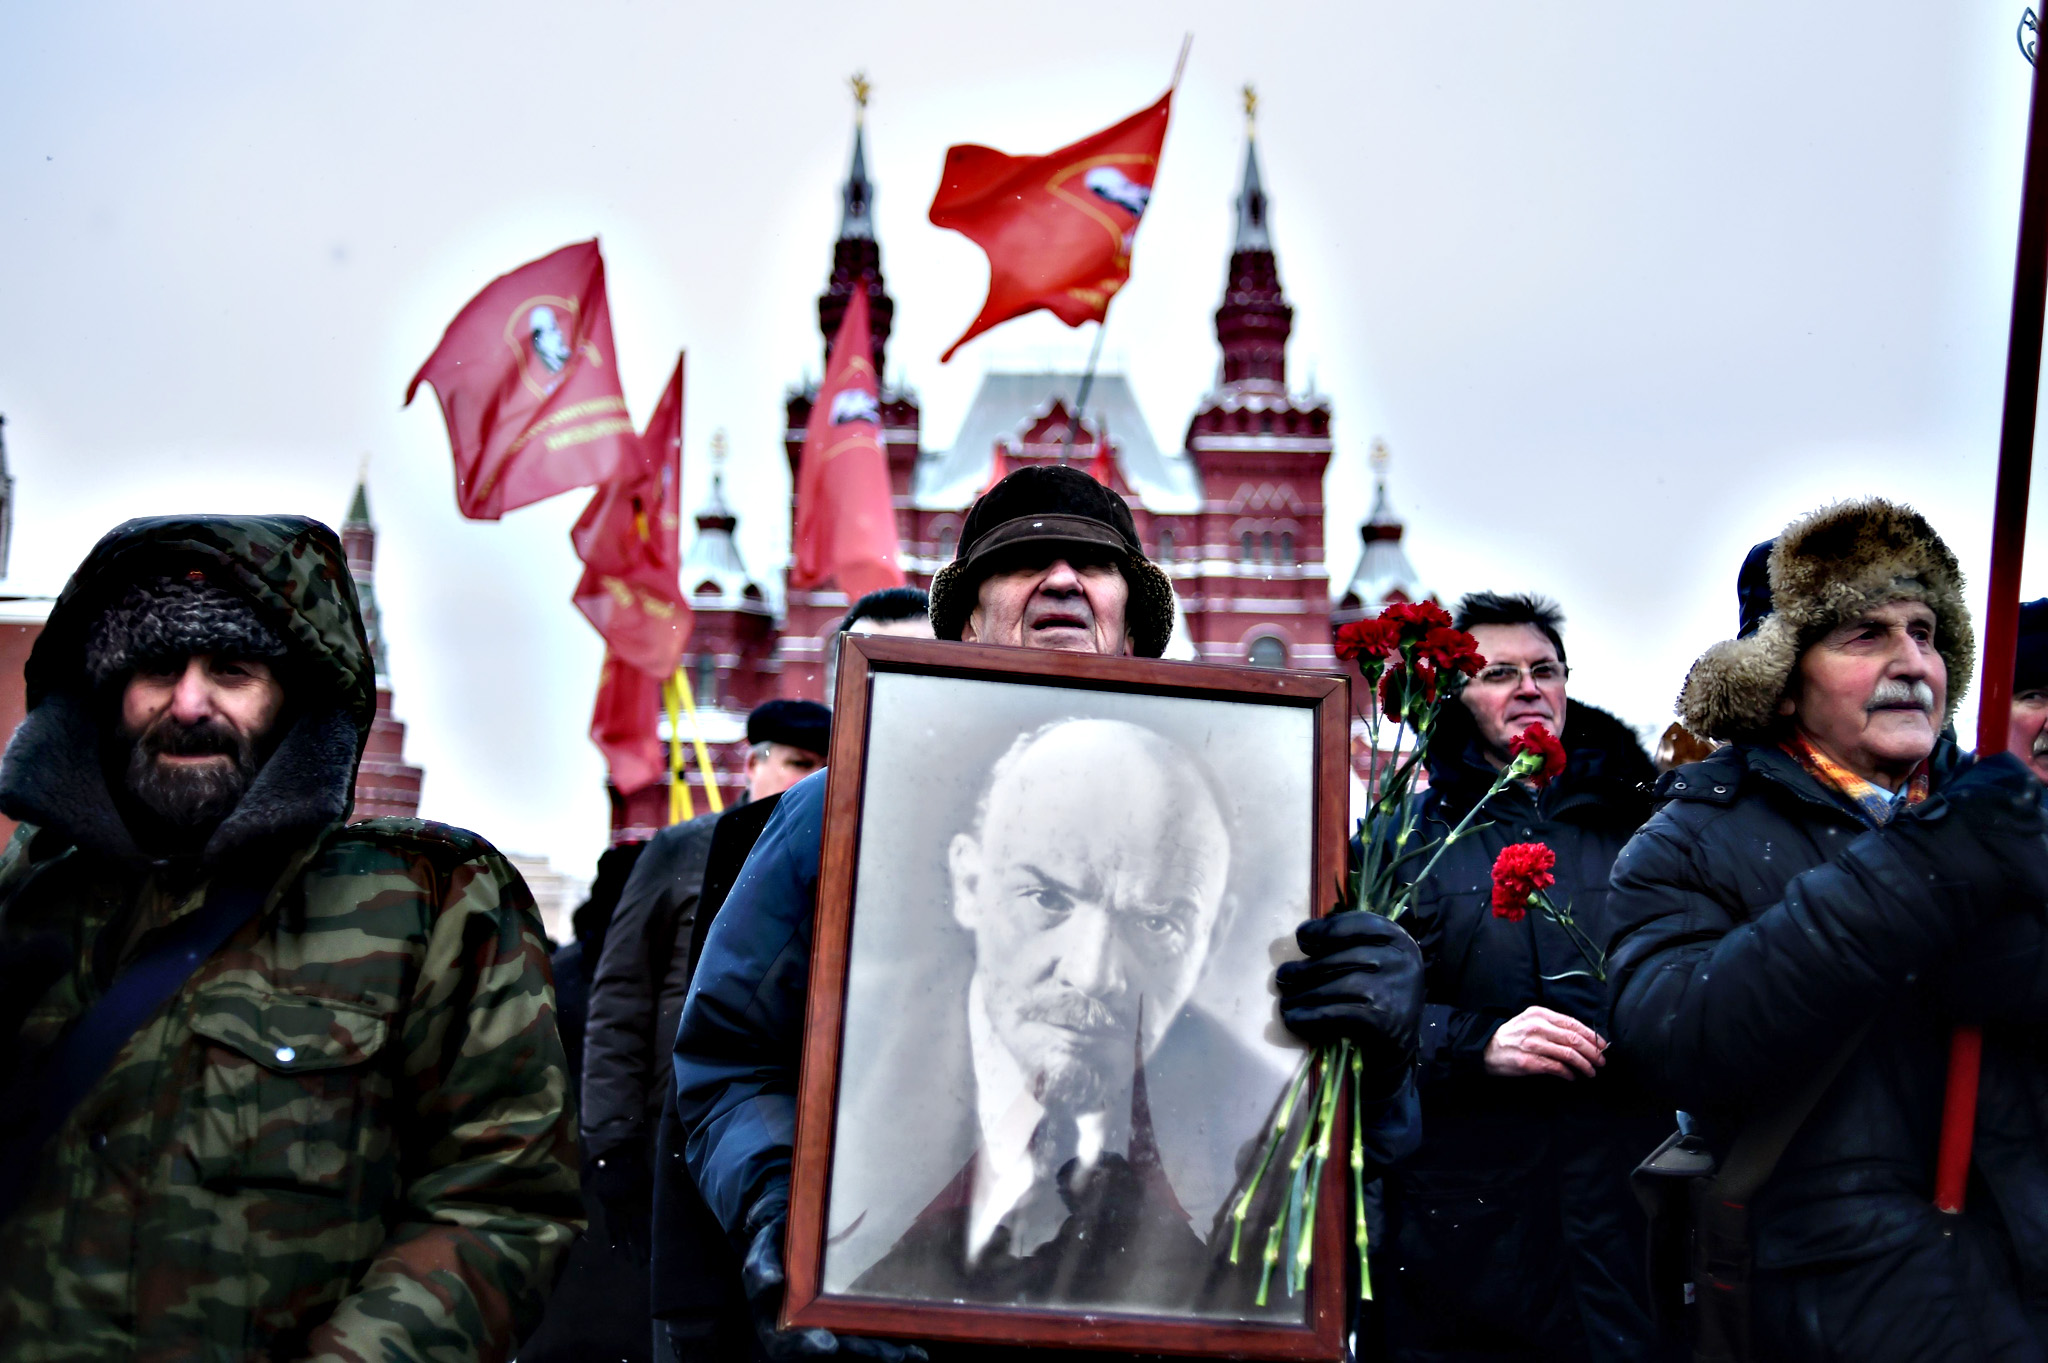 Russian Communist Party supporters carry a portrait of late Soviet leader Vladimir Lenin as they take part in a memorial ceremony to mark the 92st anniversary of his death at Red Square in central Moscow on January 21, 2016.